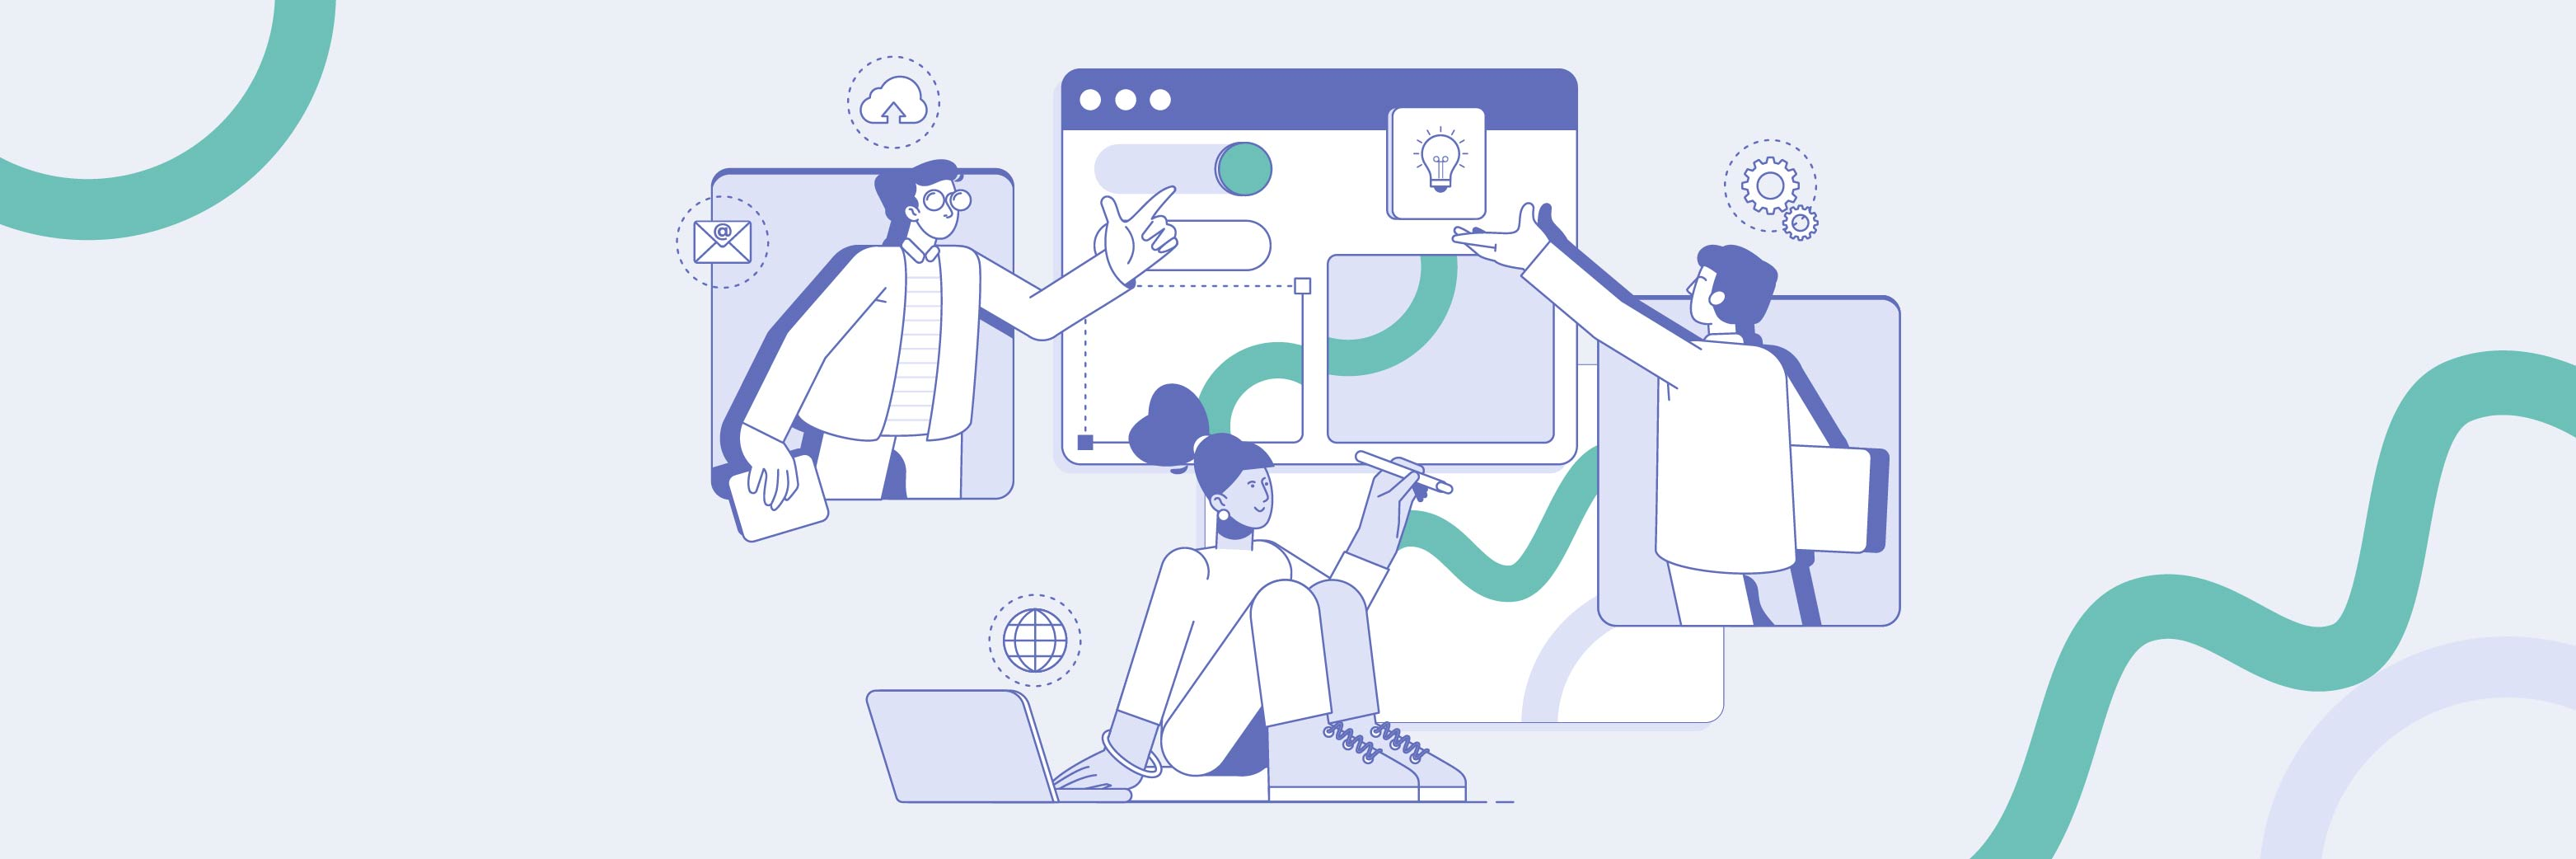 GitHub Discussions: Bringing the Open Source Community Closer Together and All in GitHub